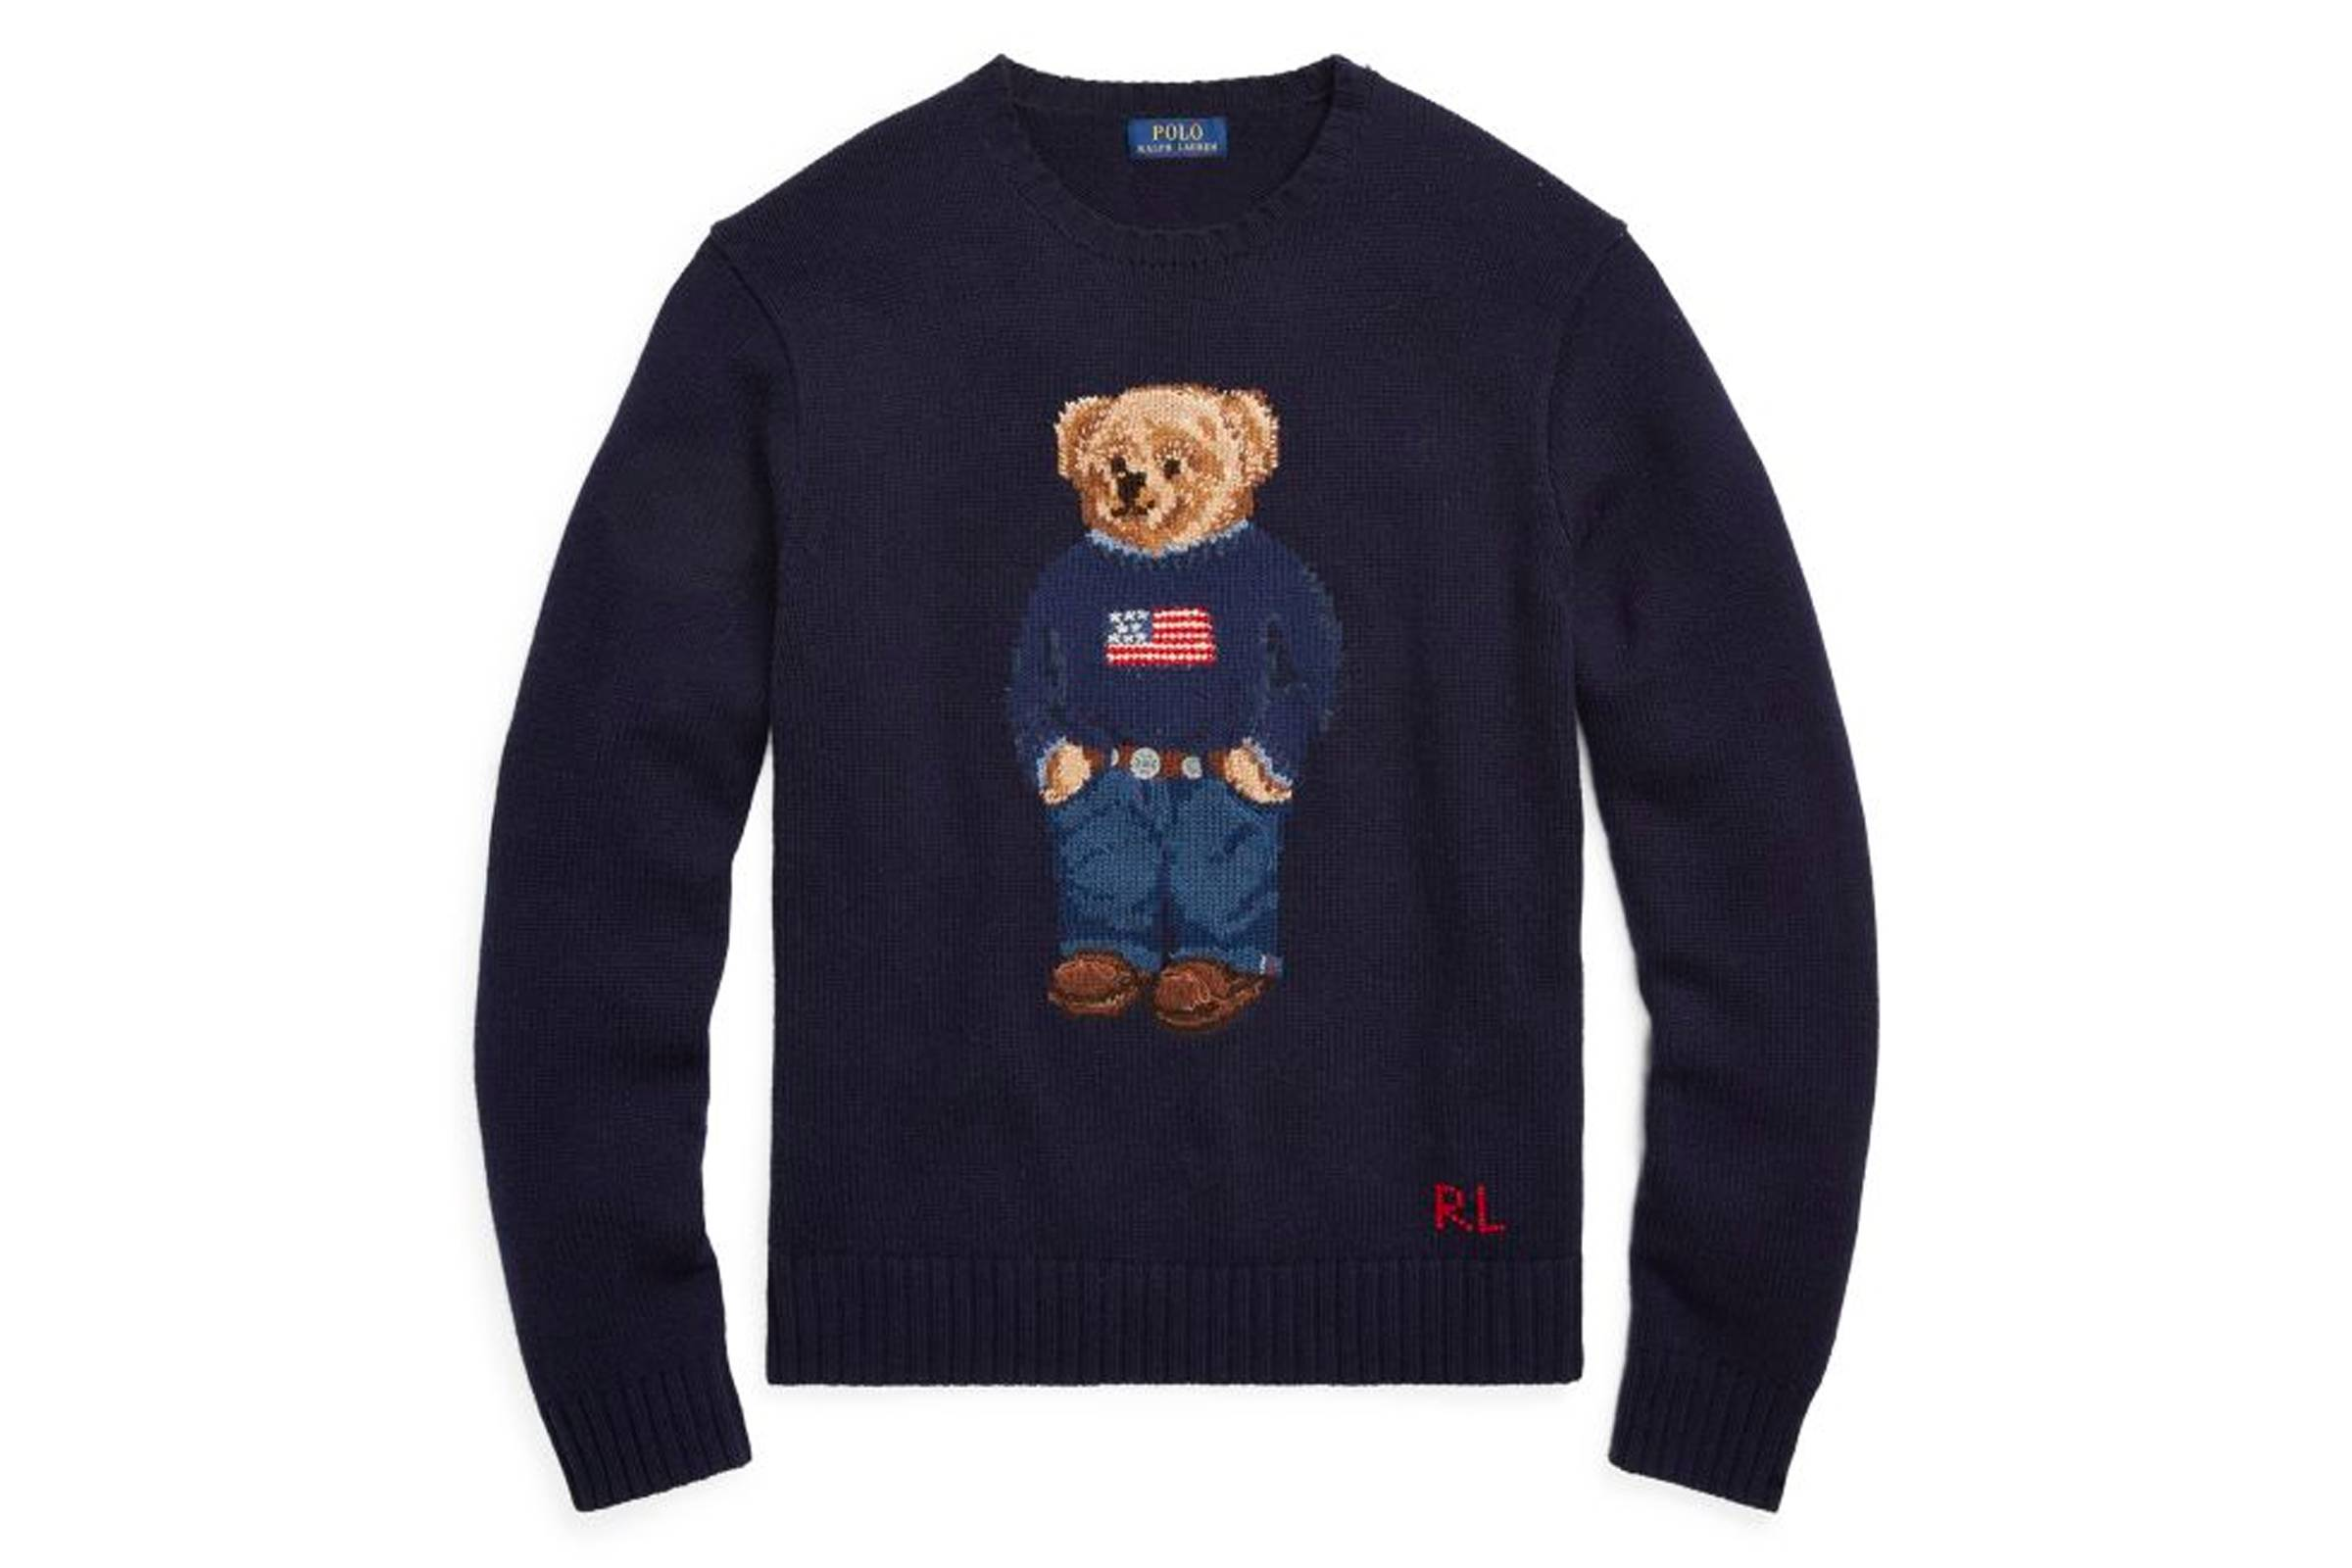 9be0eb30b An Abridged History of The Polo Bear - Ralph Lauren Polo Bear ...